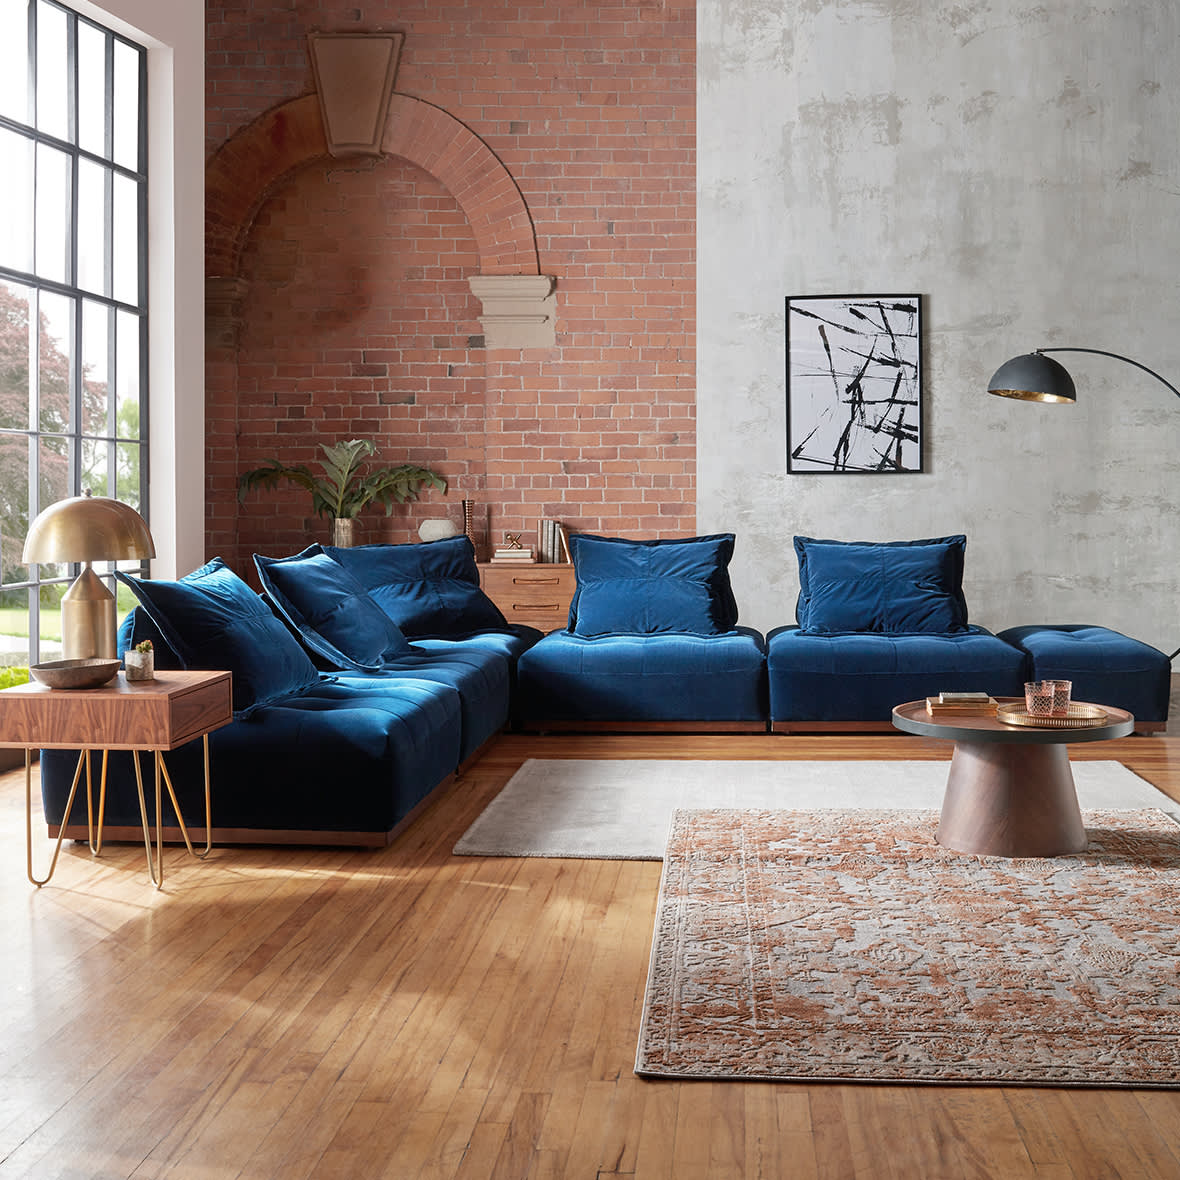 Sofology Weekend Sofa